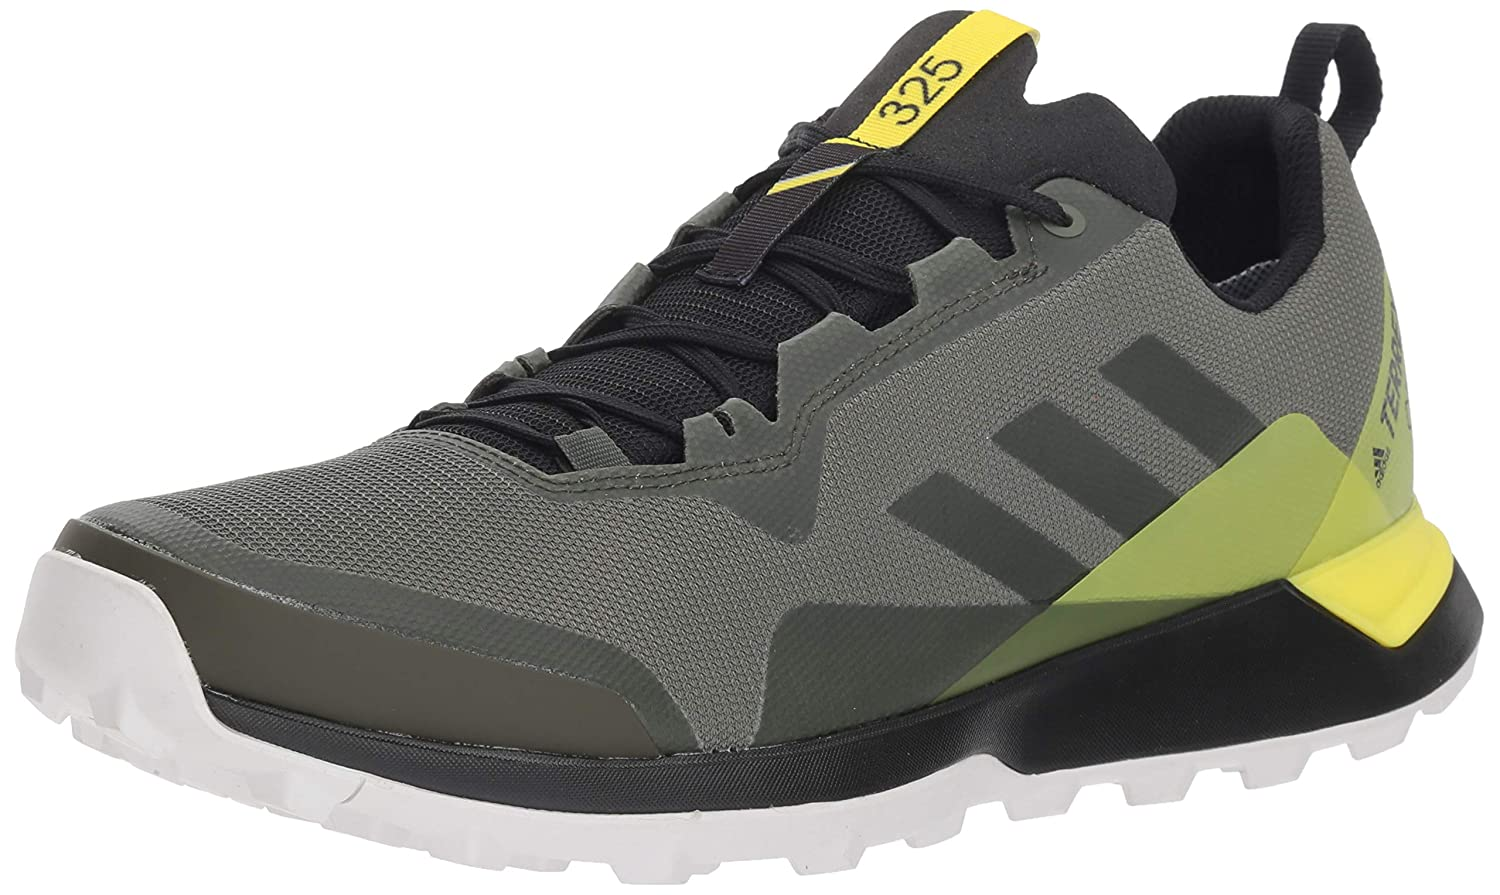 premium selection 8700f 74979 Amazon.com   adidas outdoor Mens Terrex CMTK GTX Shoe   Trail Running